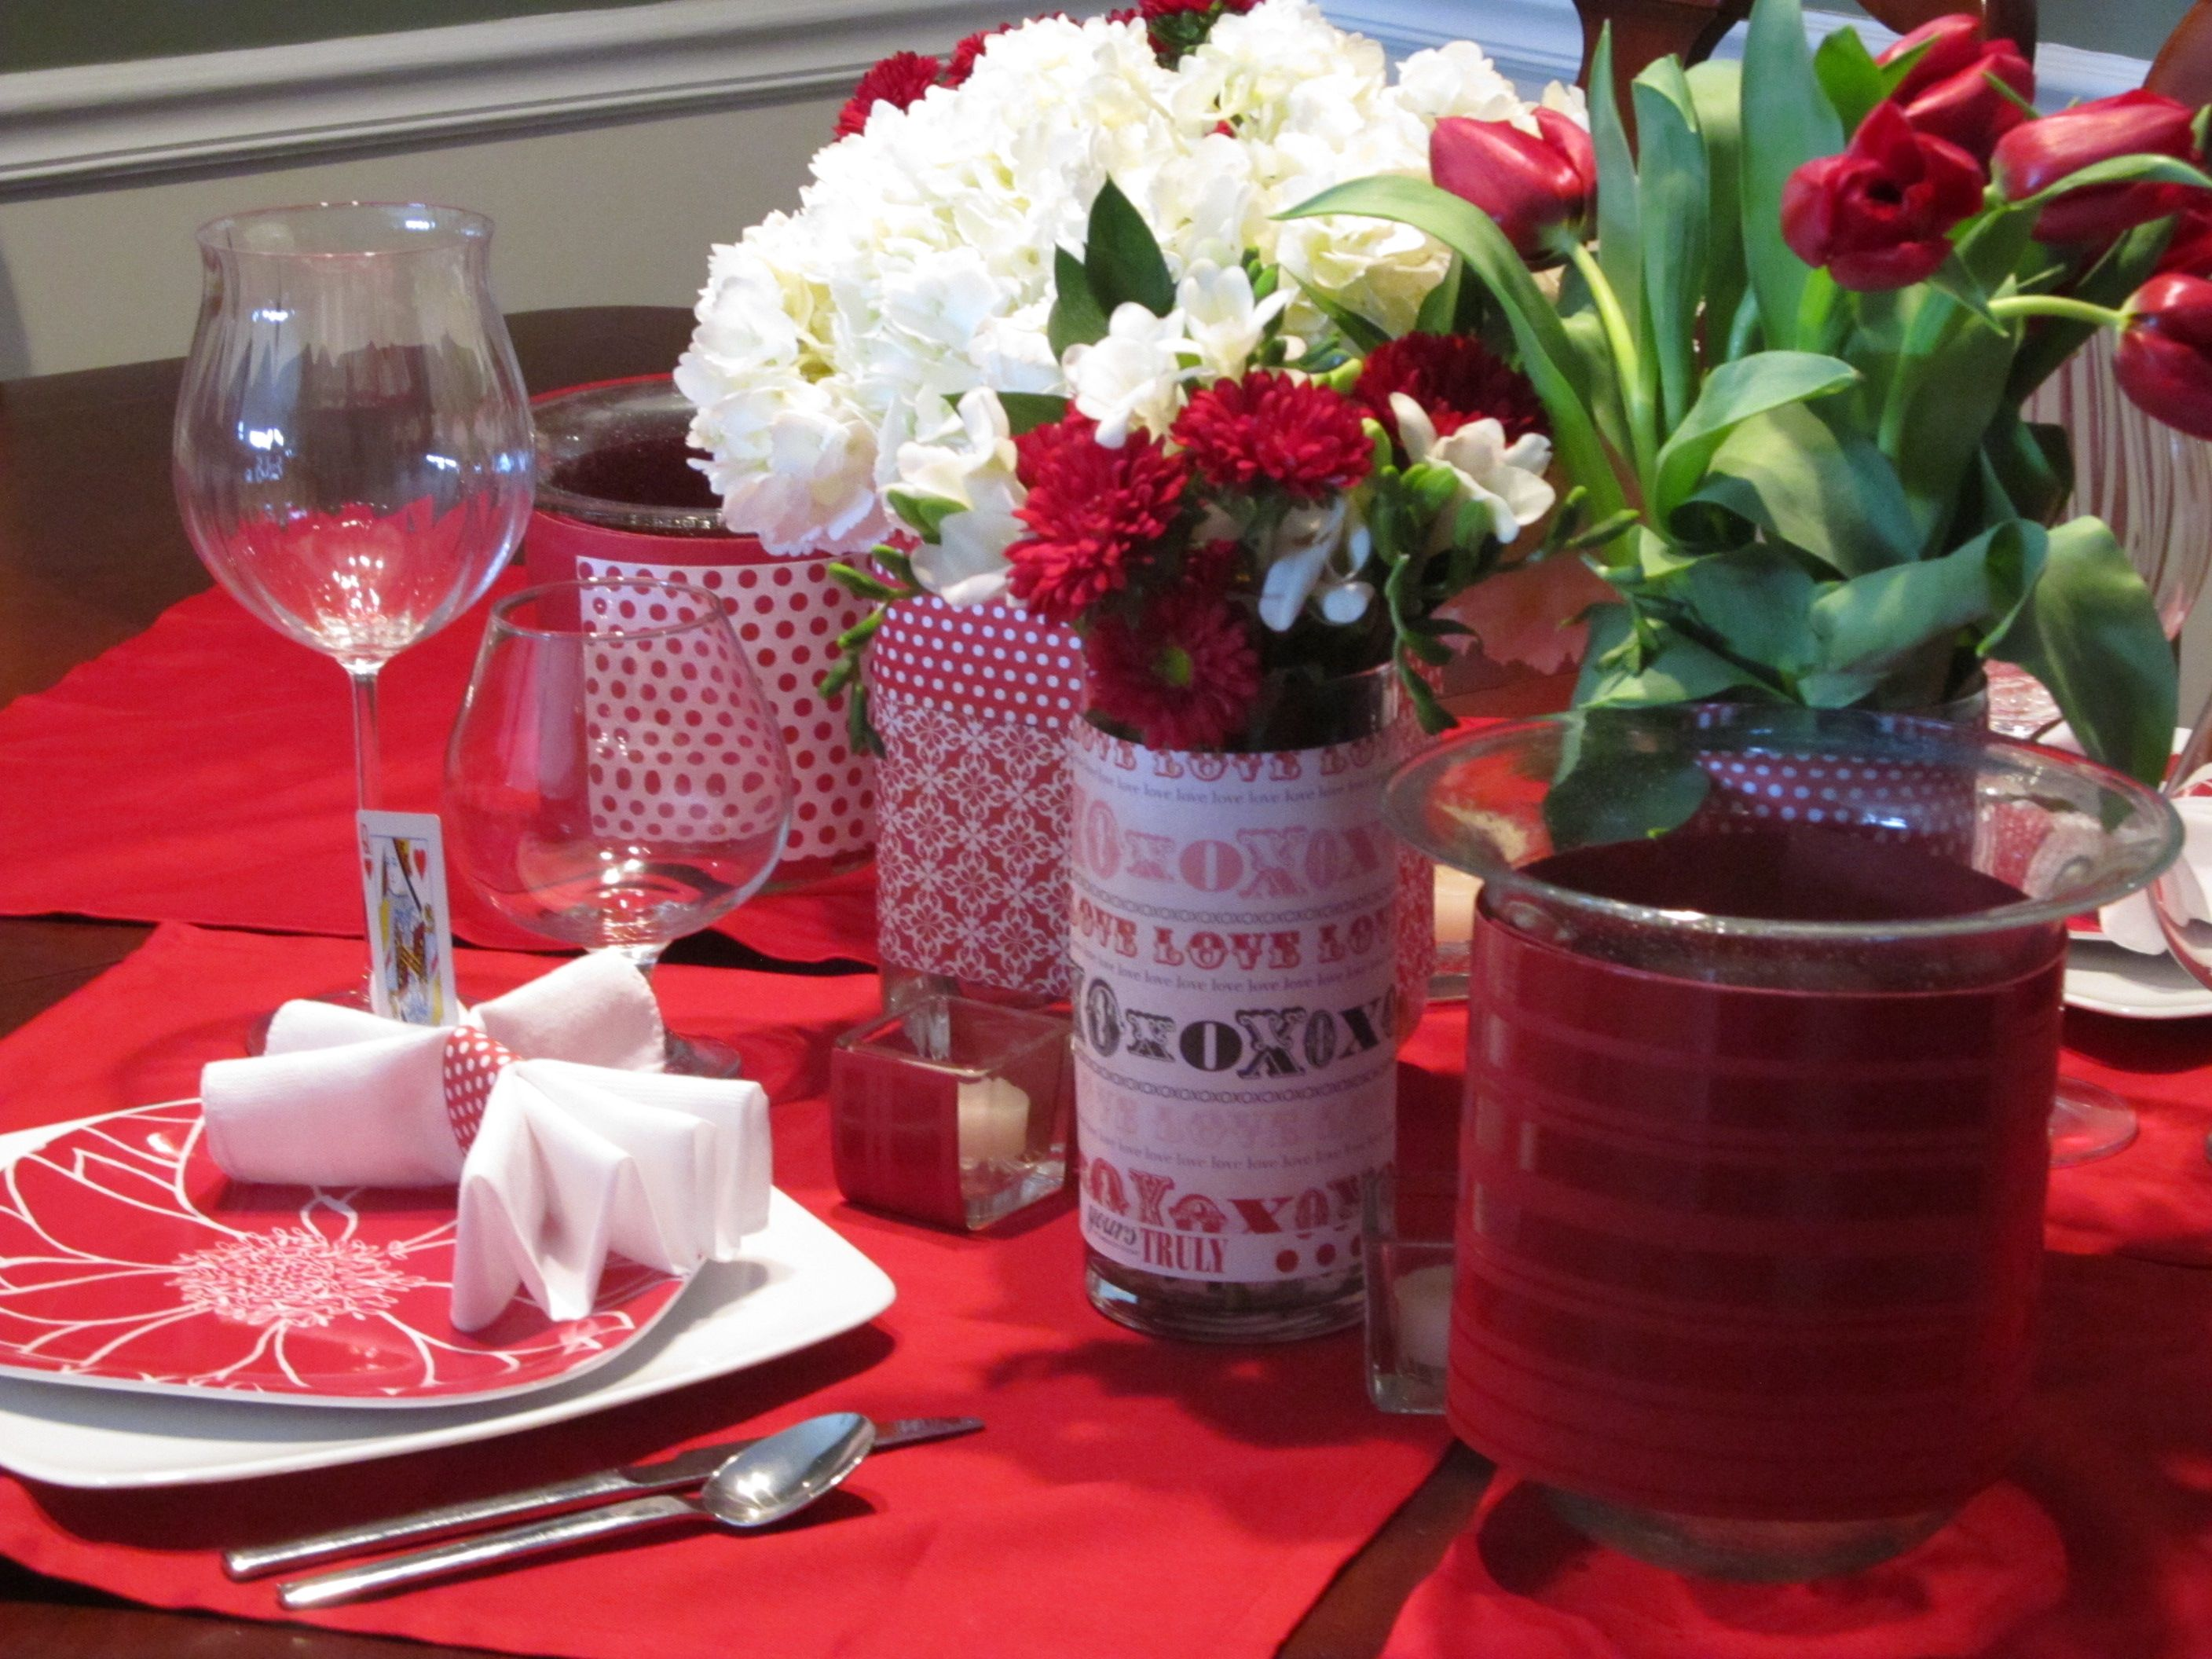 Red linens encore the go to pot table tops and treasures lovely valentines table decoration ideas with simple and beautiful flower arrangement in creative vase and red placemats table cloth for valentines table izmirmasajfo